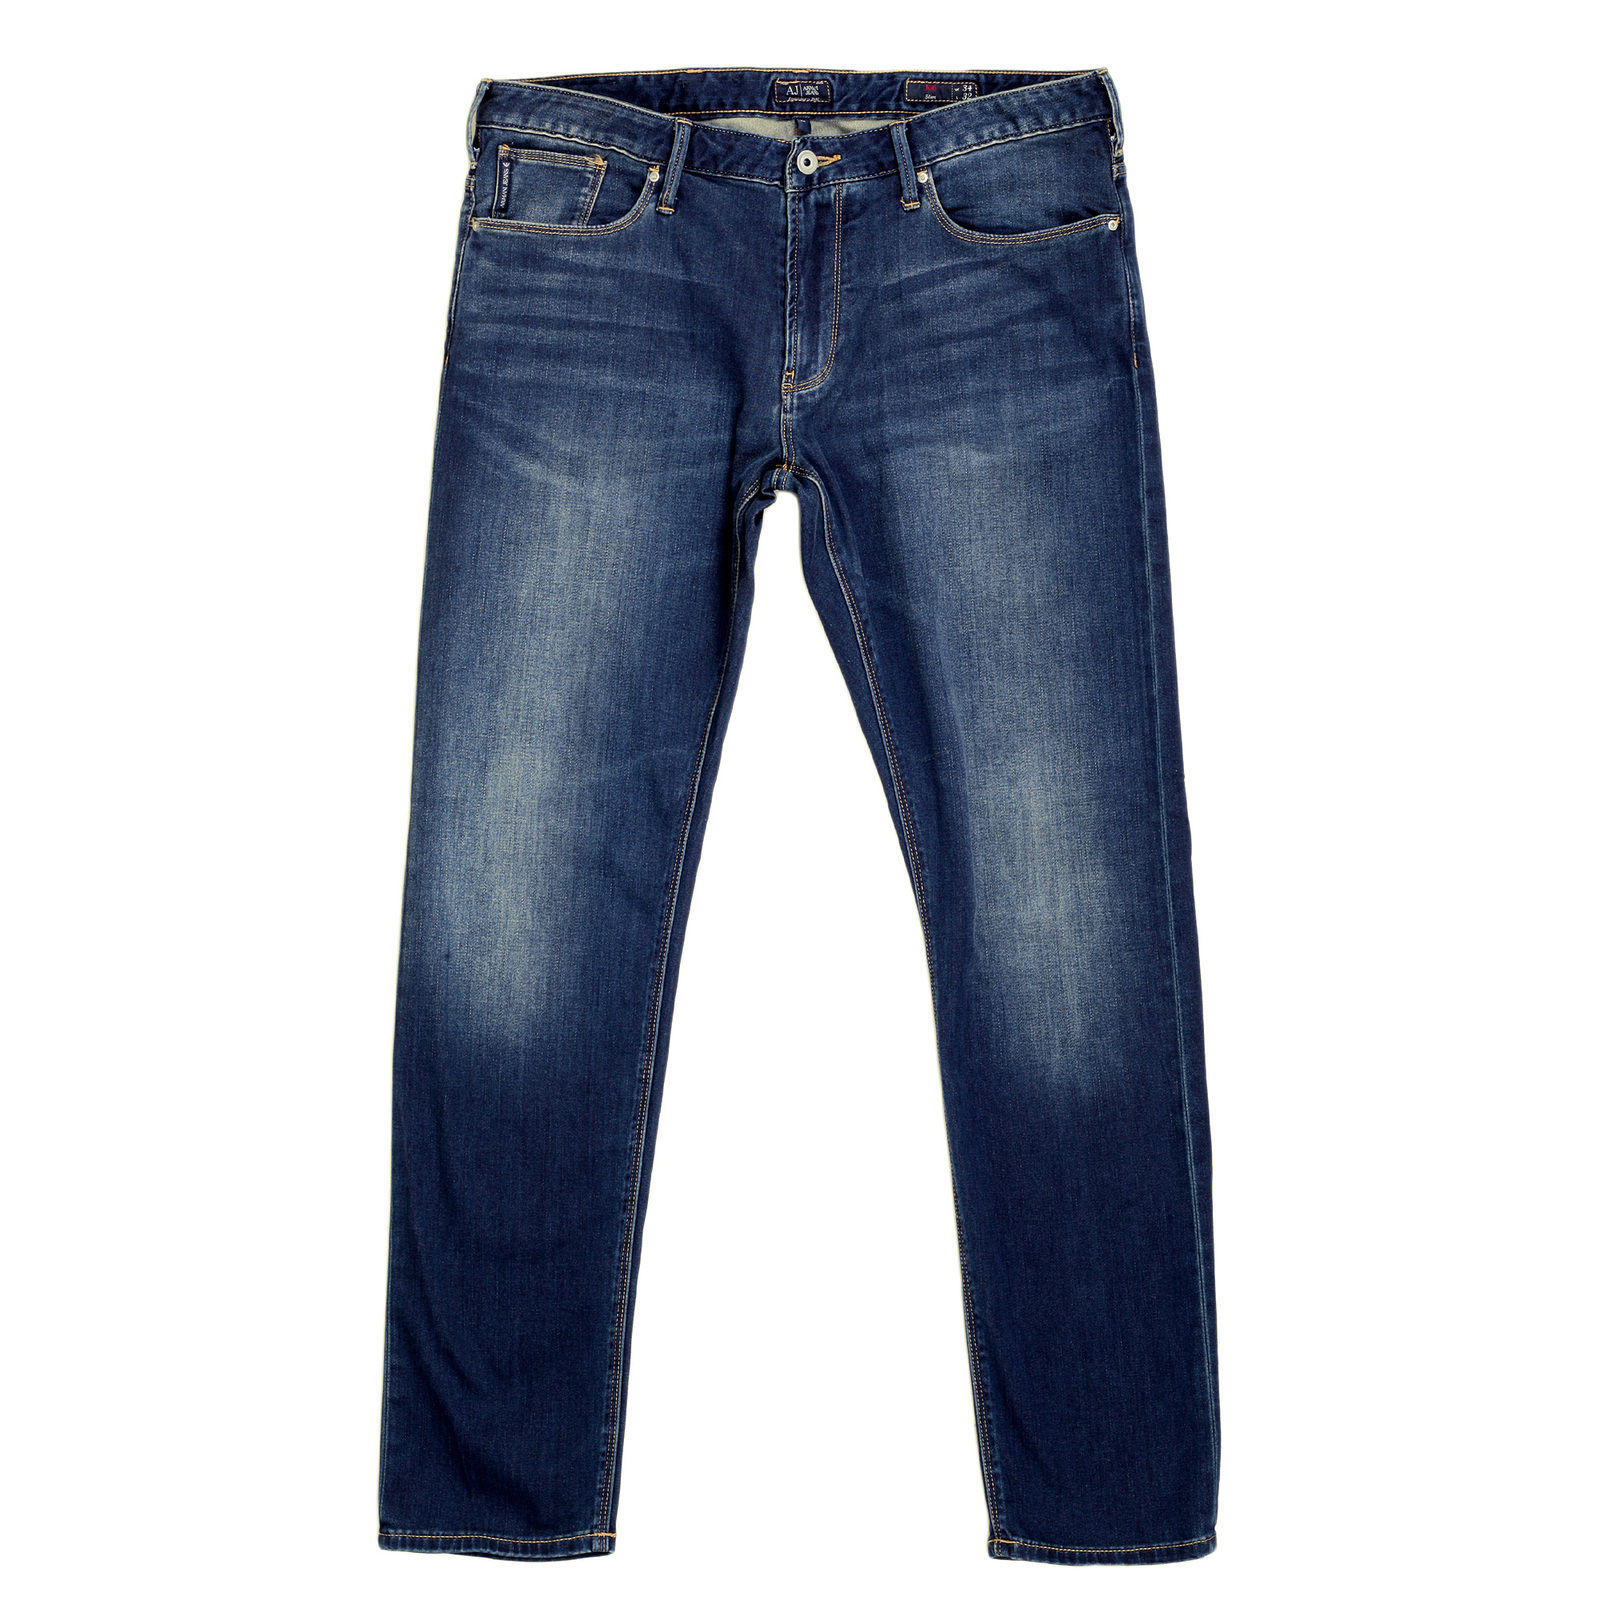 shop for faded blue mens low rise jeans by armani jeans. Black Bedroom Furniture Sets. Home Design Ideas